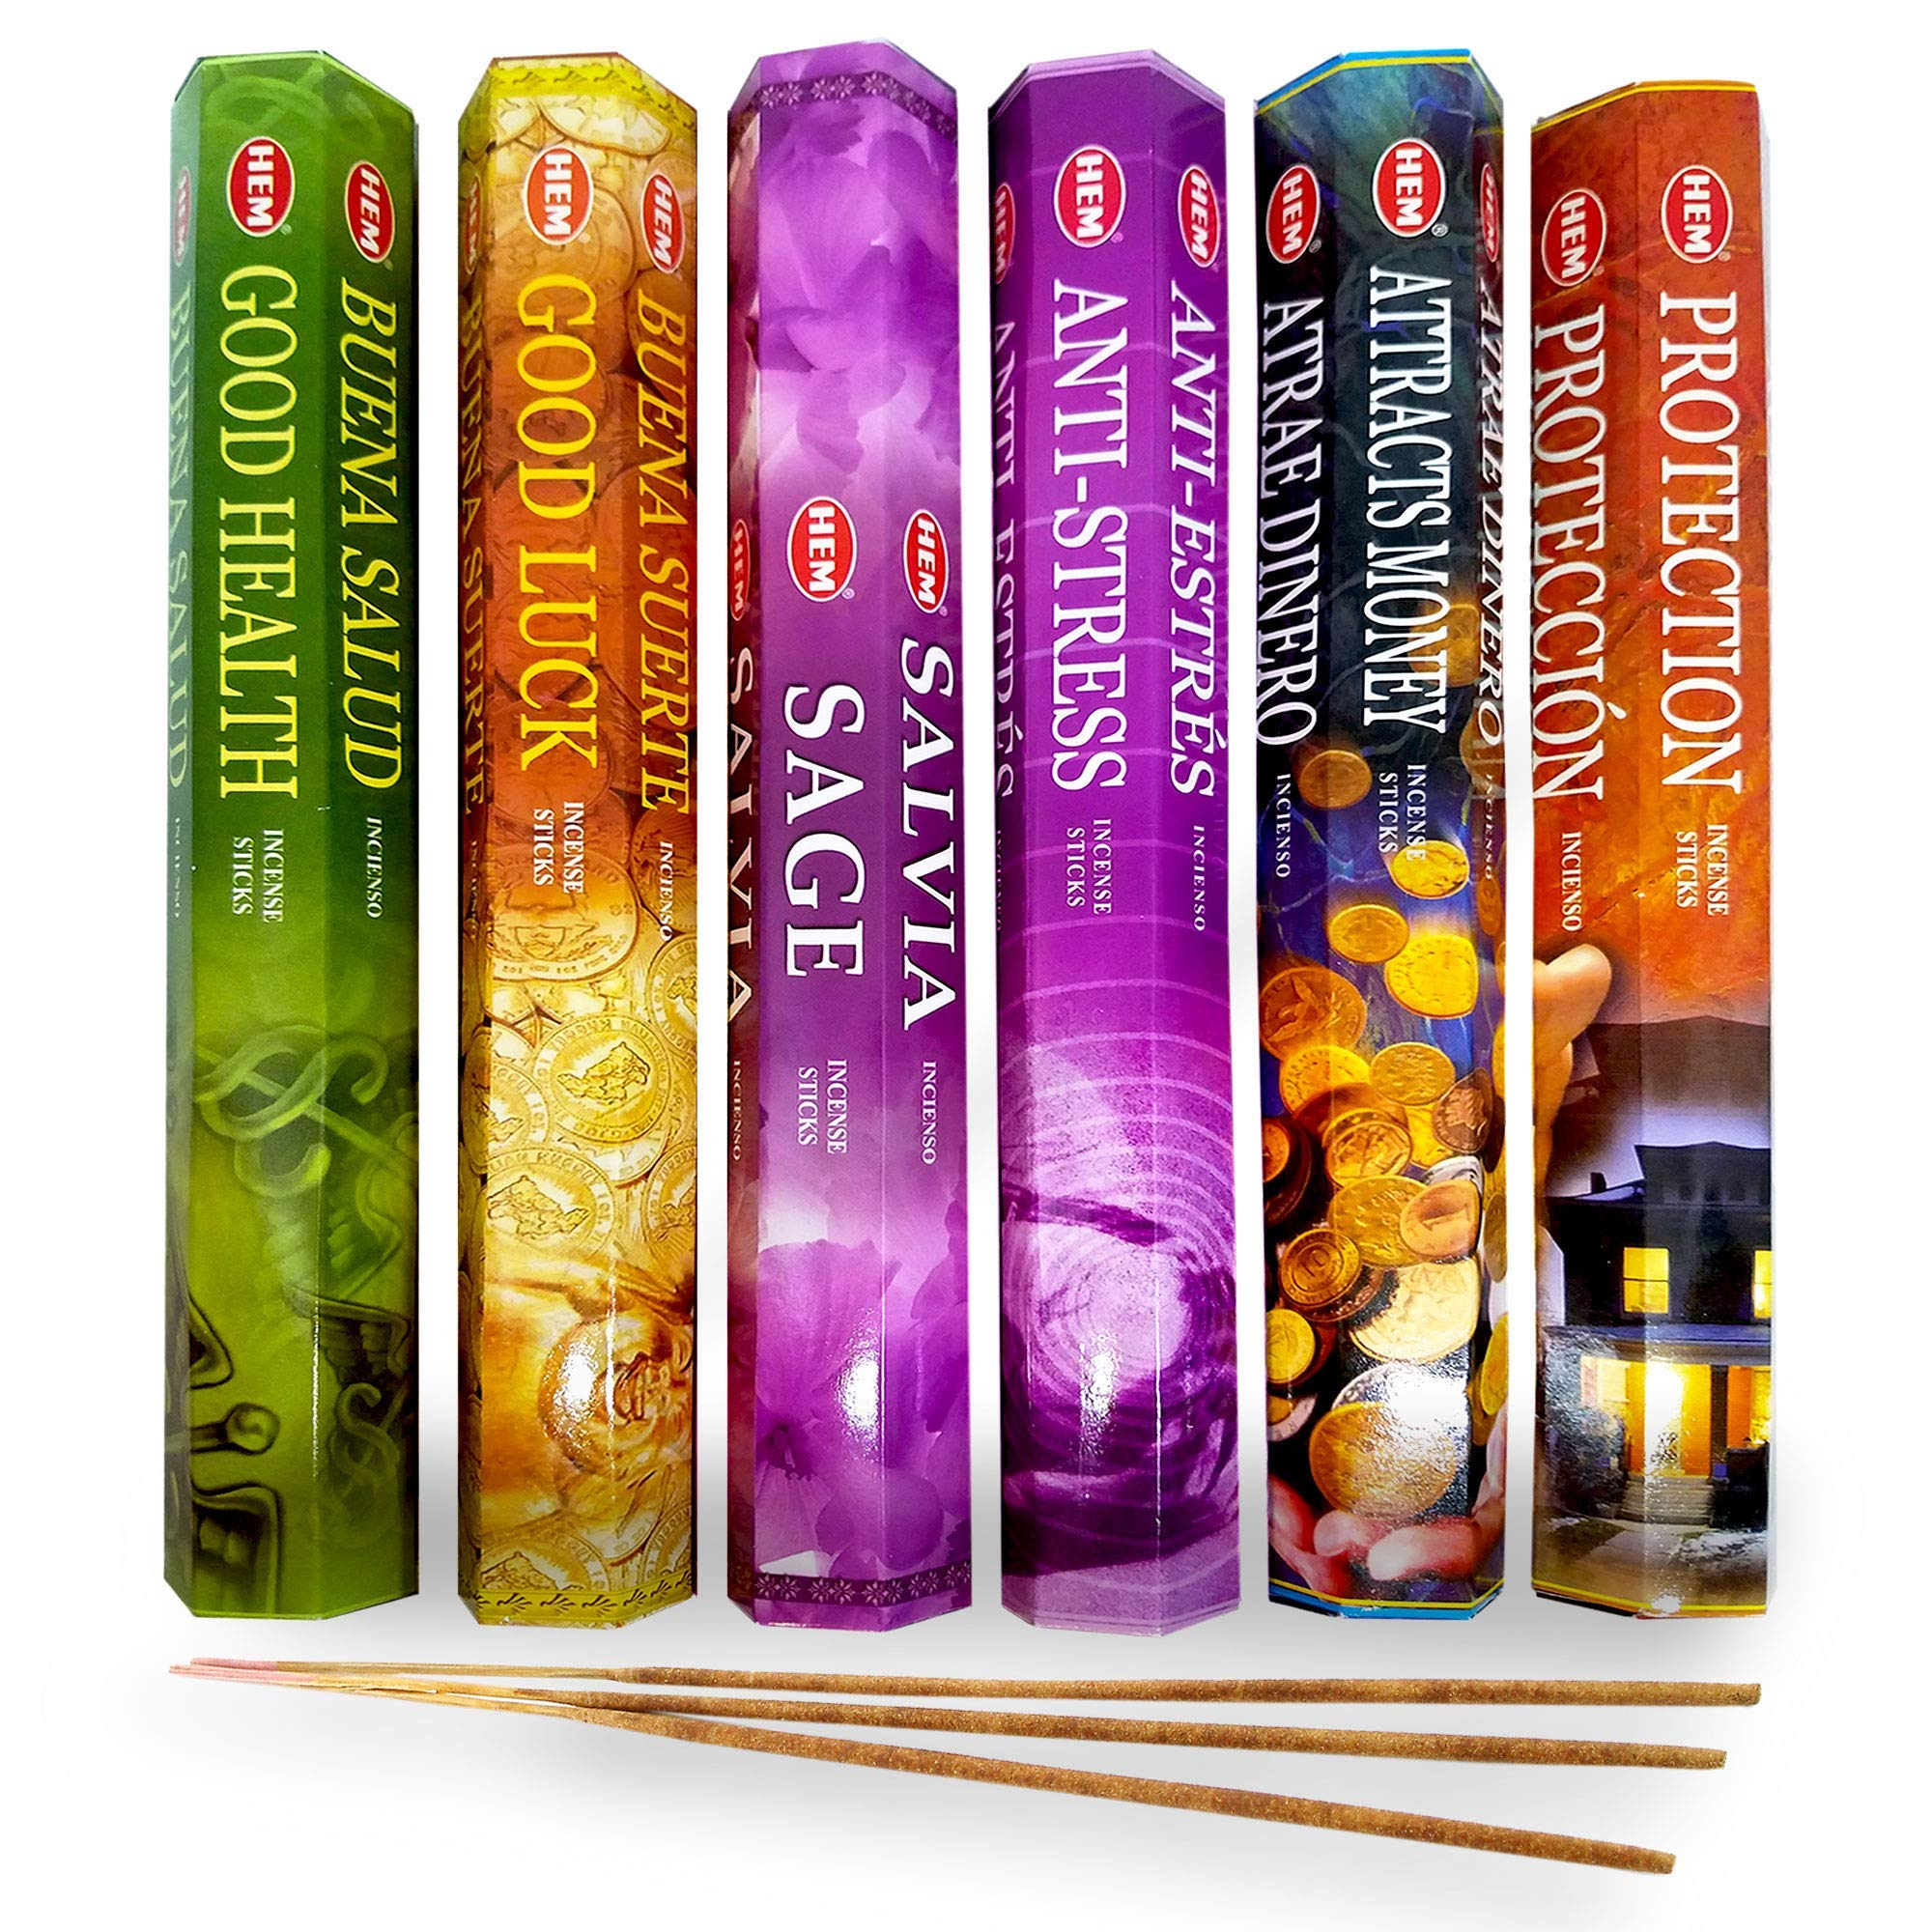 AurAmbiance New Age Feng Shui Incense Stick Spiritual Gifts Set; Inscents Sticks for Natural Healing & Protection